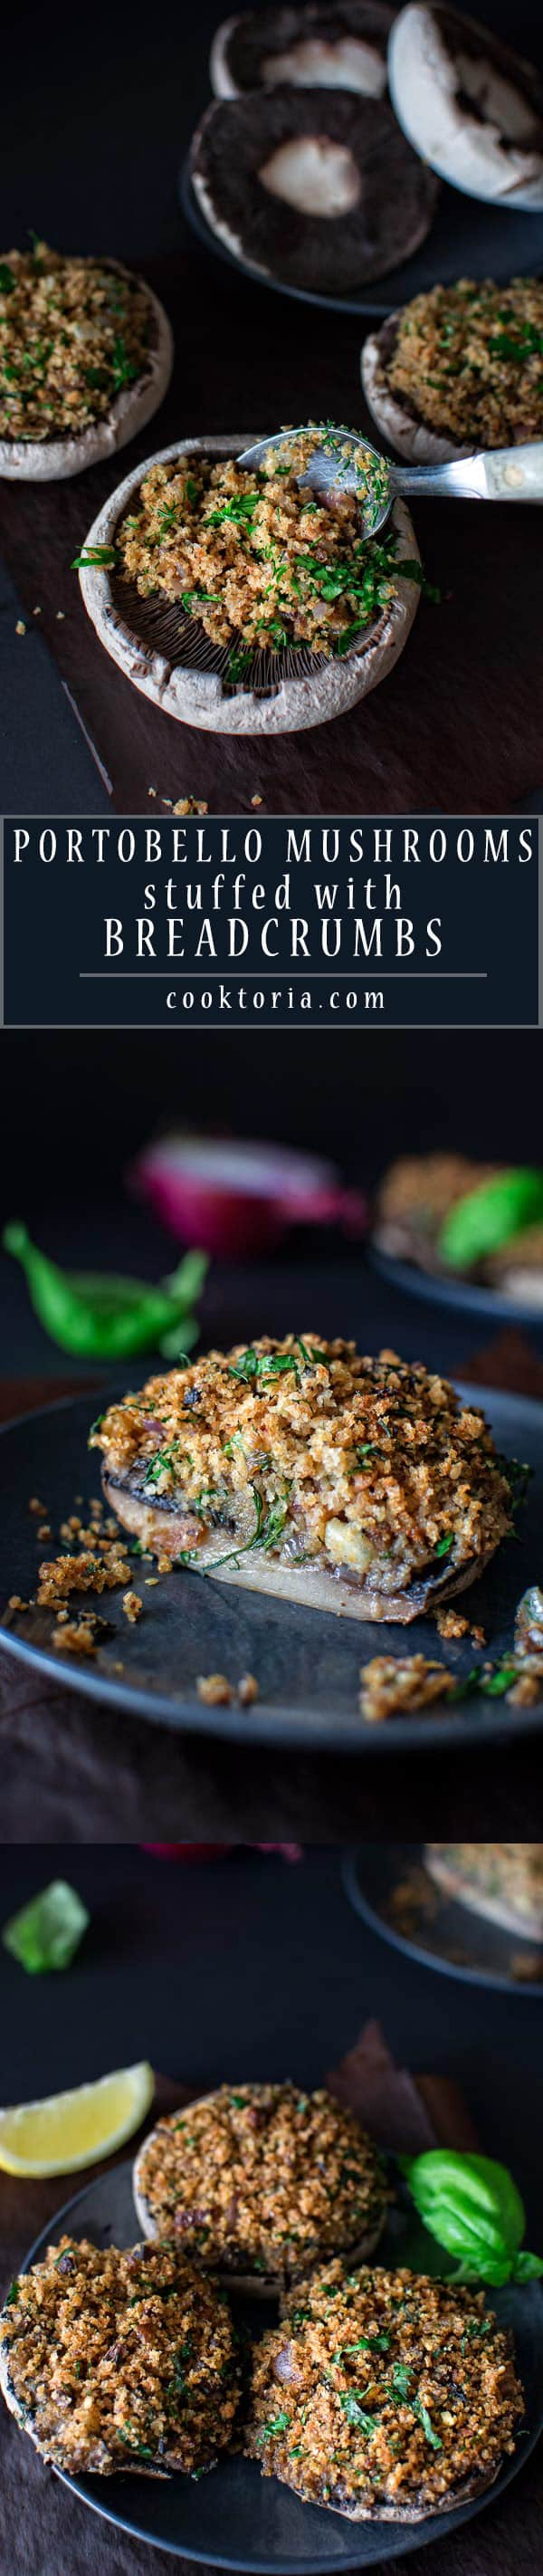 portobello-mushrooms-stuffed-with-breadcrumbs-2